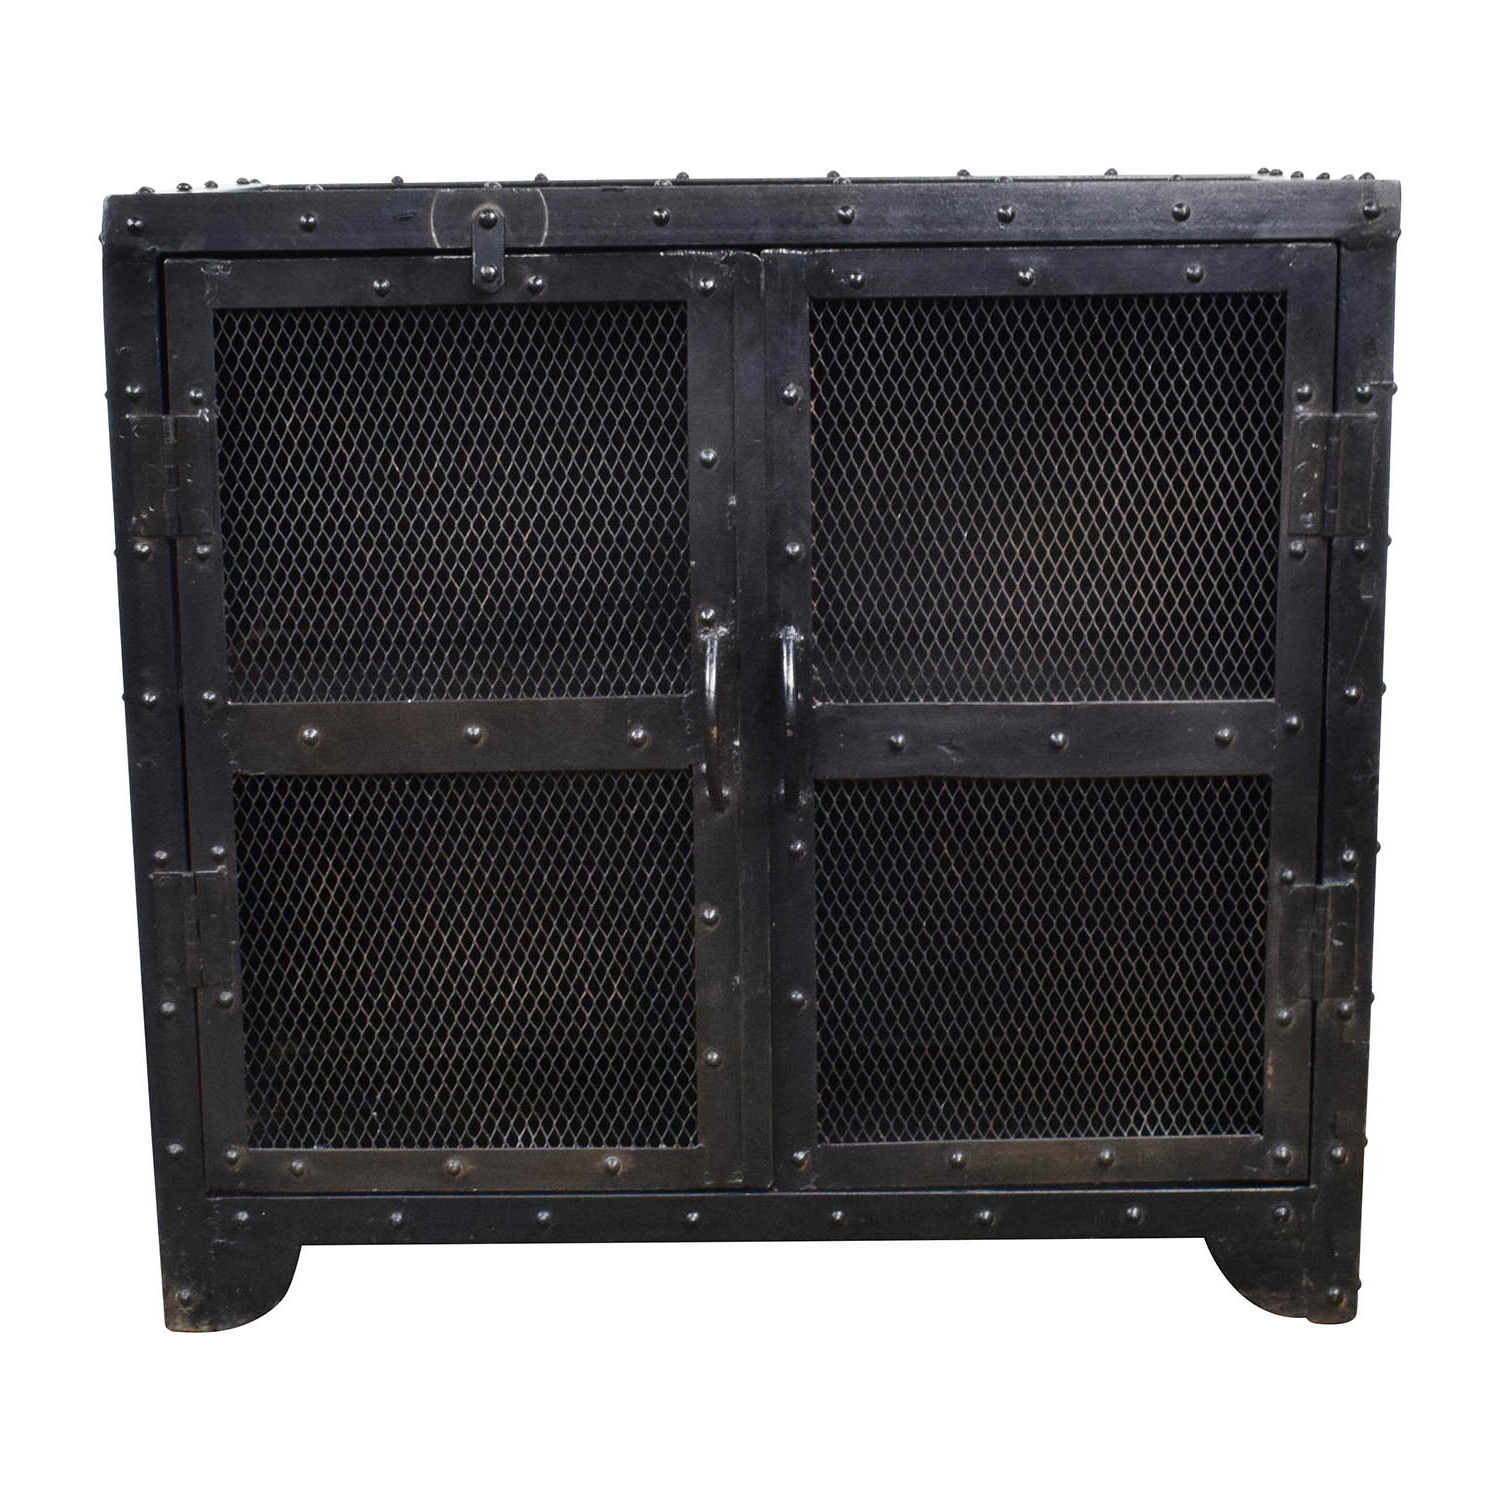 [%71% Off – Abc Home And Carpet Abc Home & Carpet Black Iron Cabinet Intended For Well Known Iron Sideboards|Iron Sideboards Inside Popular 71% Off – Abc Home And Carpet Abc Home & Carpet Black Iron Cabinet|Current Iron Sideboards Within 71% Off – Abc Home And Carpet Abc Home & Carpet Black Iron Cabinet|Recent 71% Off – Abc Home And Carpet Abc Home & Carpet Black Iron Cabinet Inside Iron Sideboards%] (View 1 of 20)